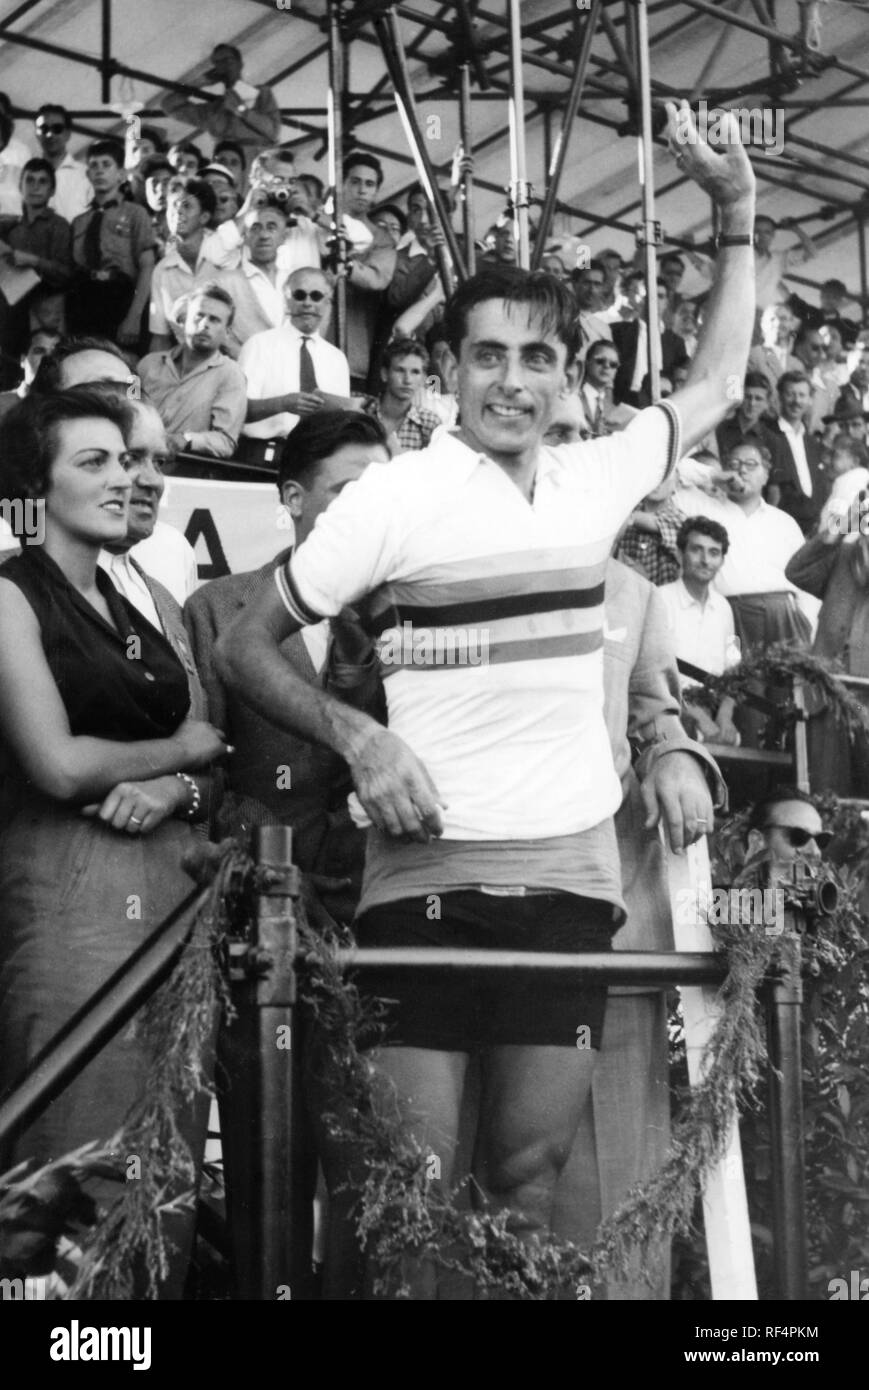 fausto coppi and giulia occhini, 1953 Stock Photo